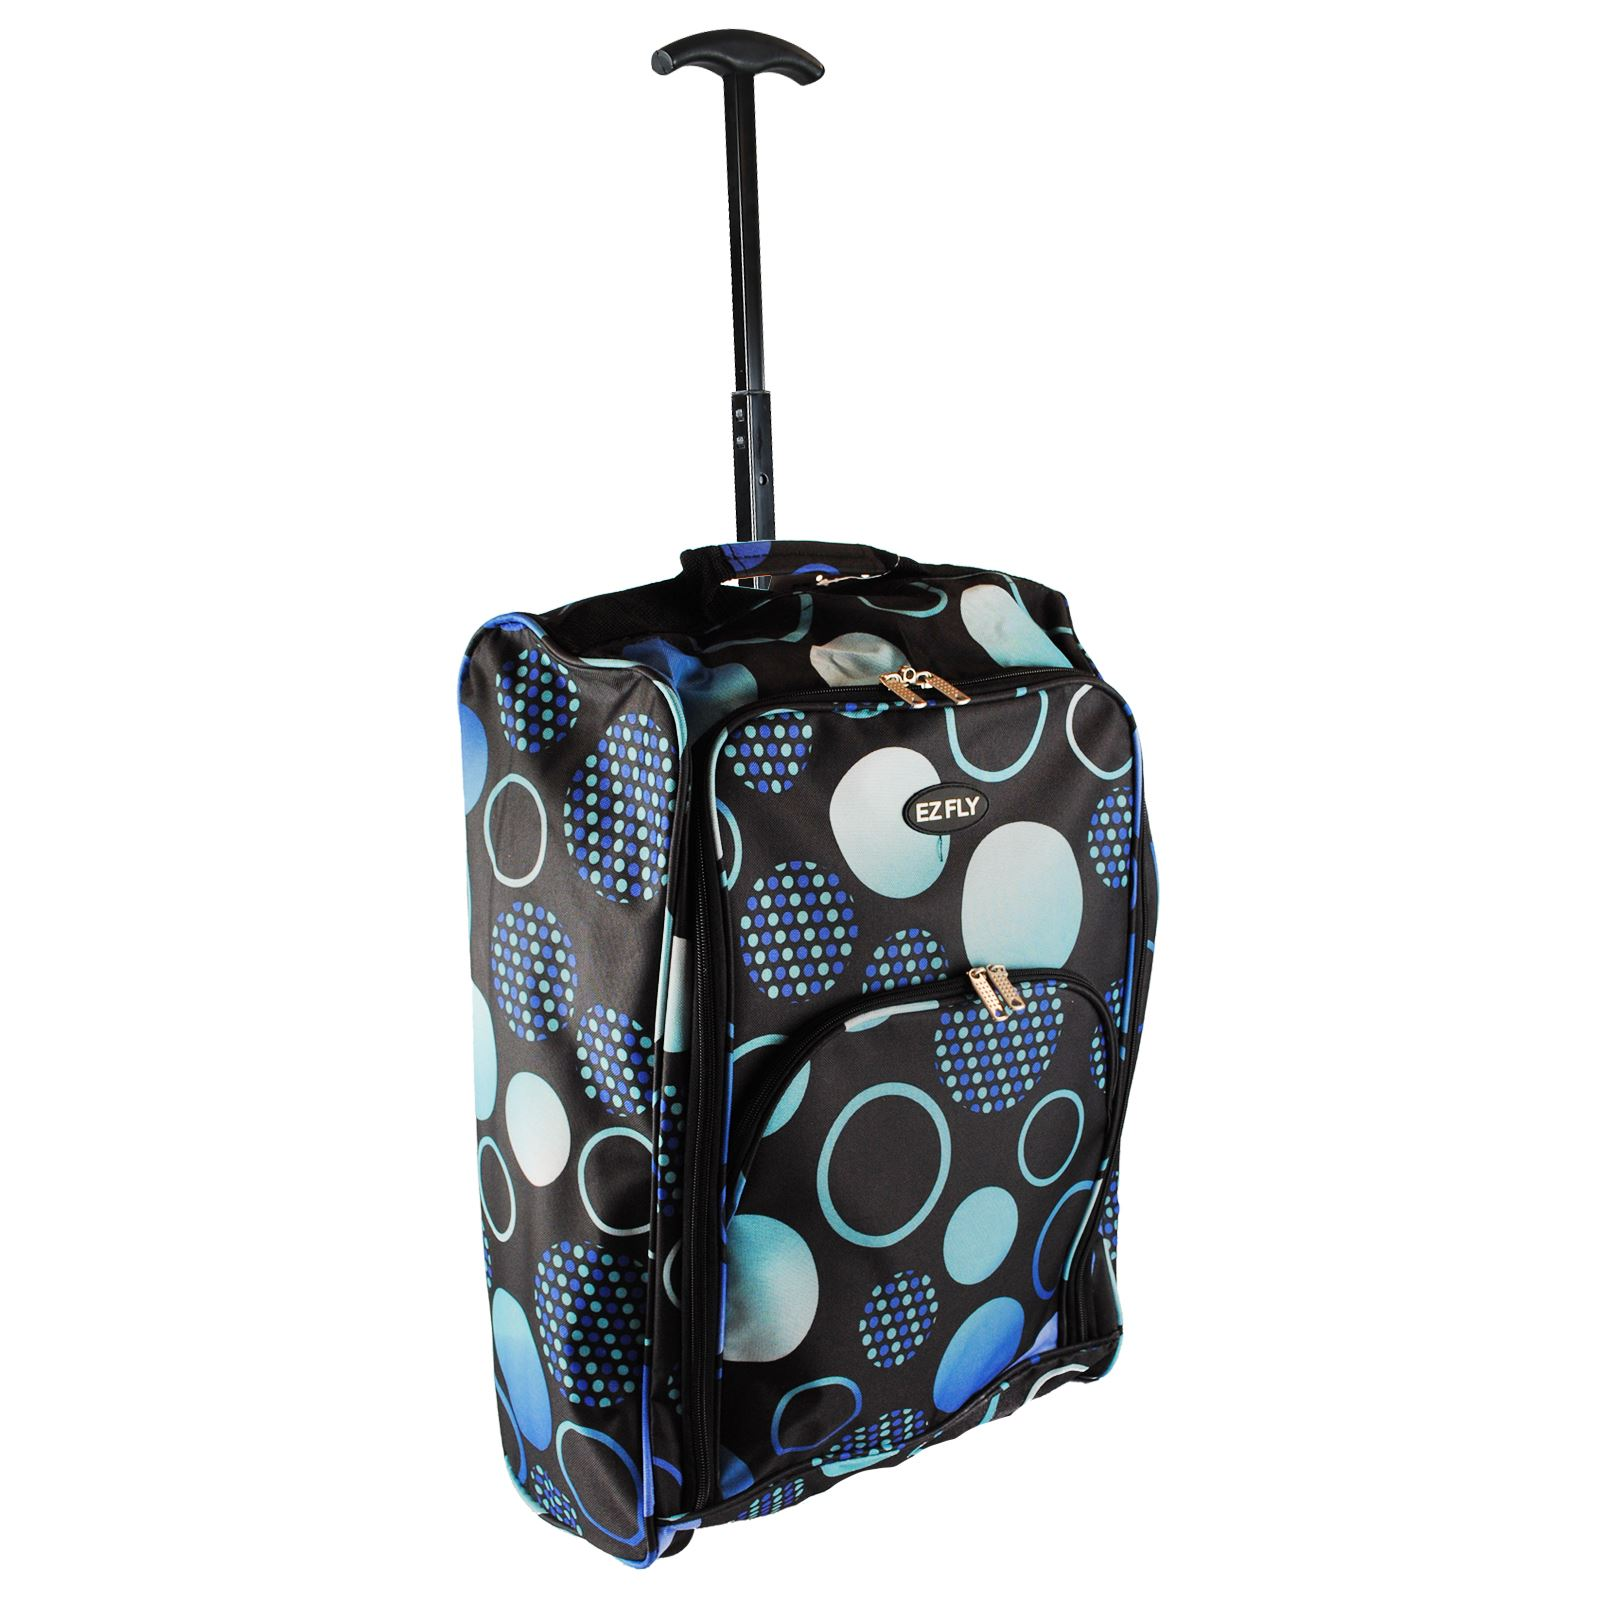 Petite Valise Cabine Cabin Hand Luggage Trolley Bag Small Suitcase Holdall